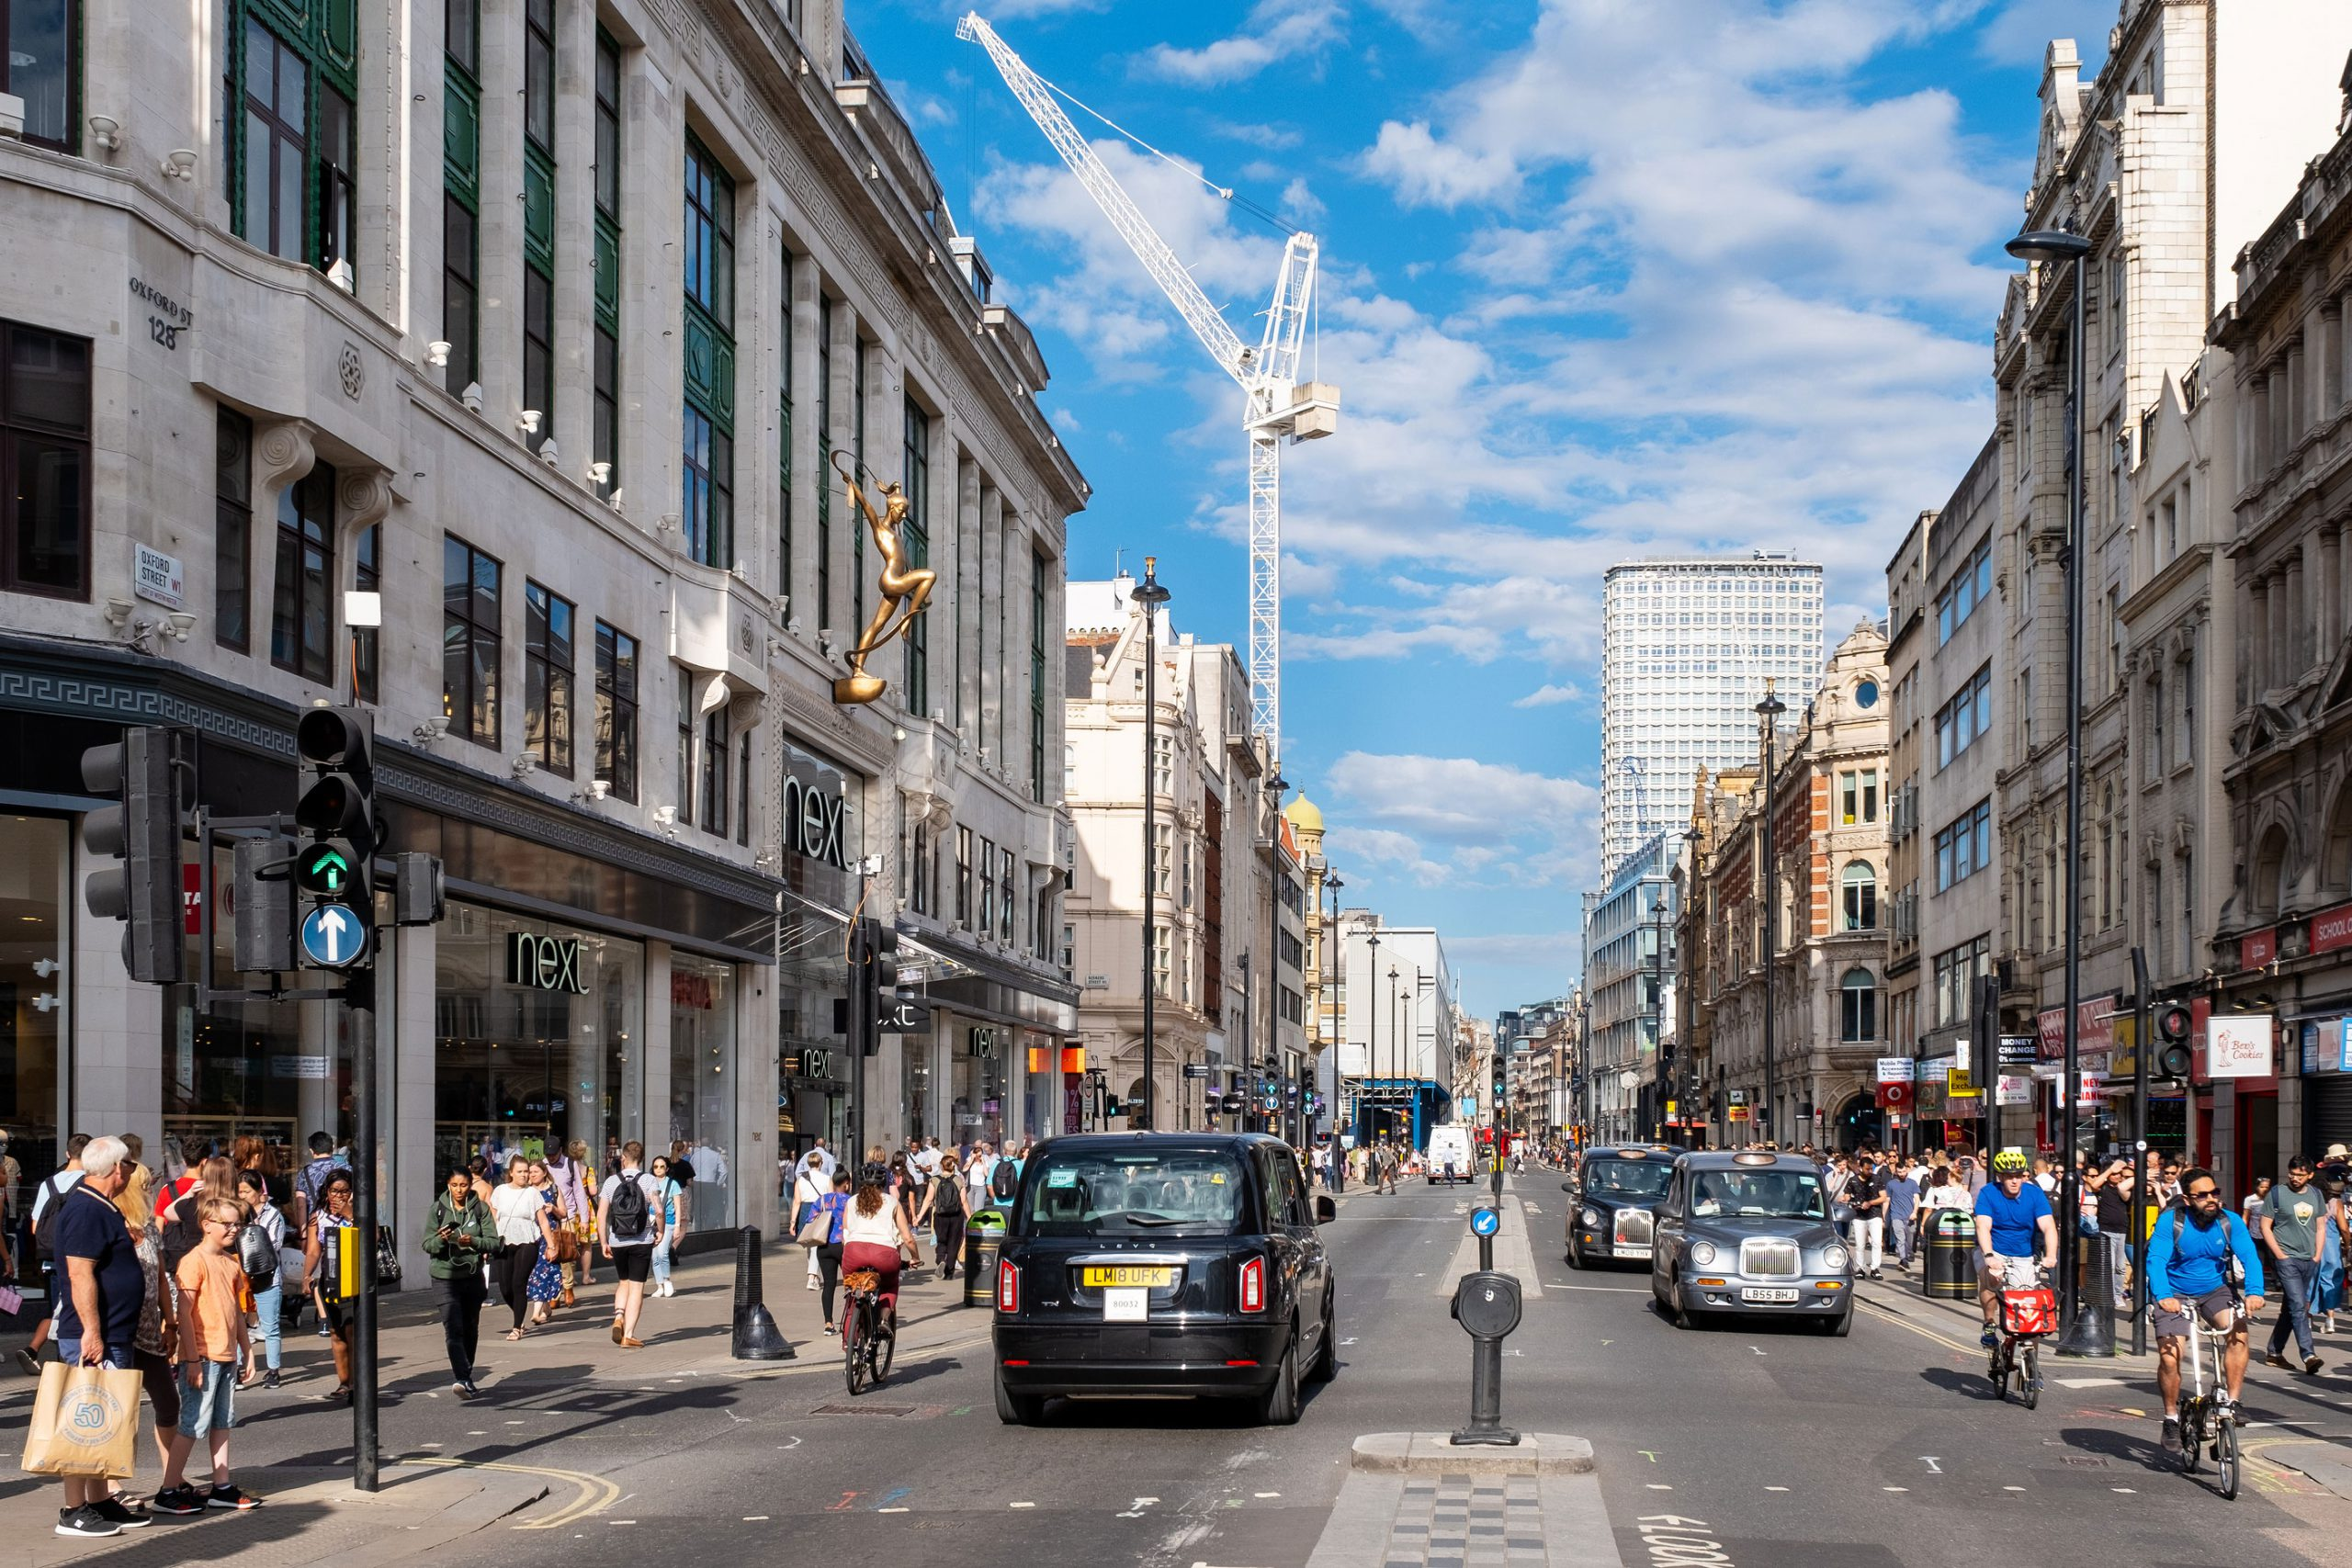 Oxford Street beste handlegate London